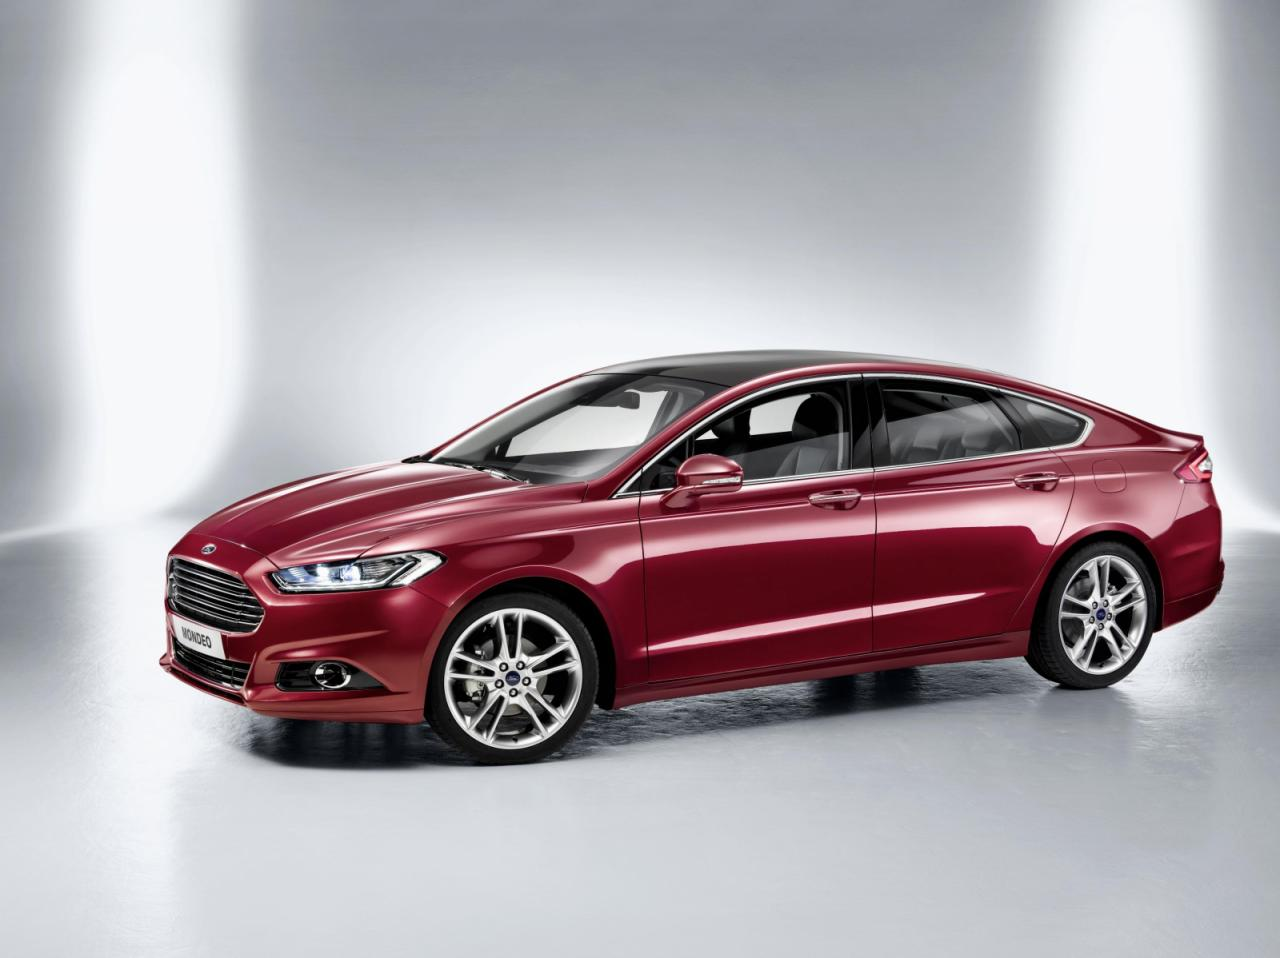 New Ford Mondeo Release Date - Updated